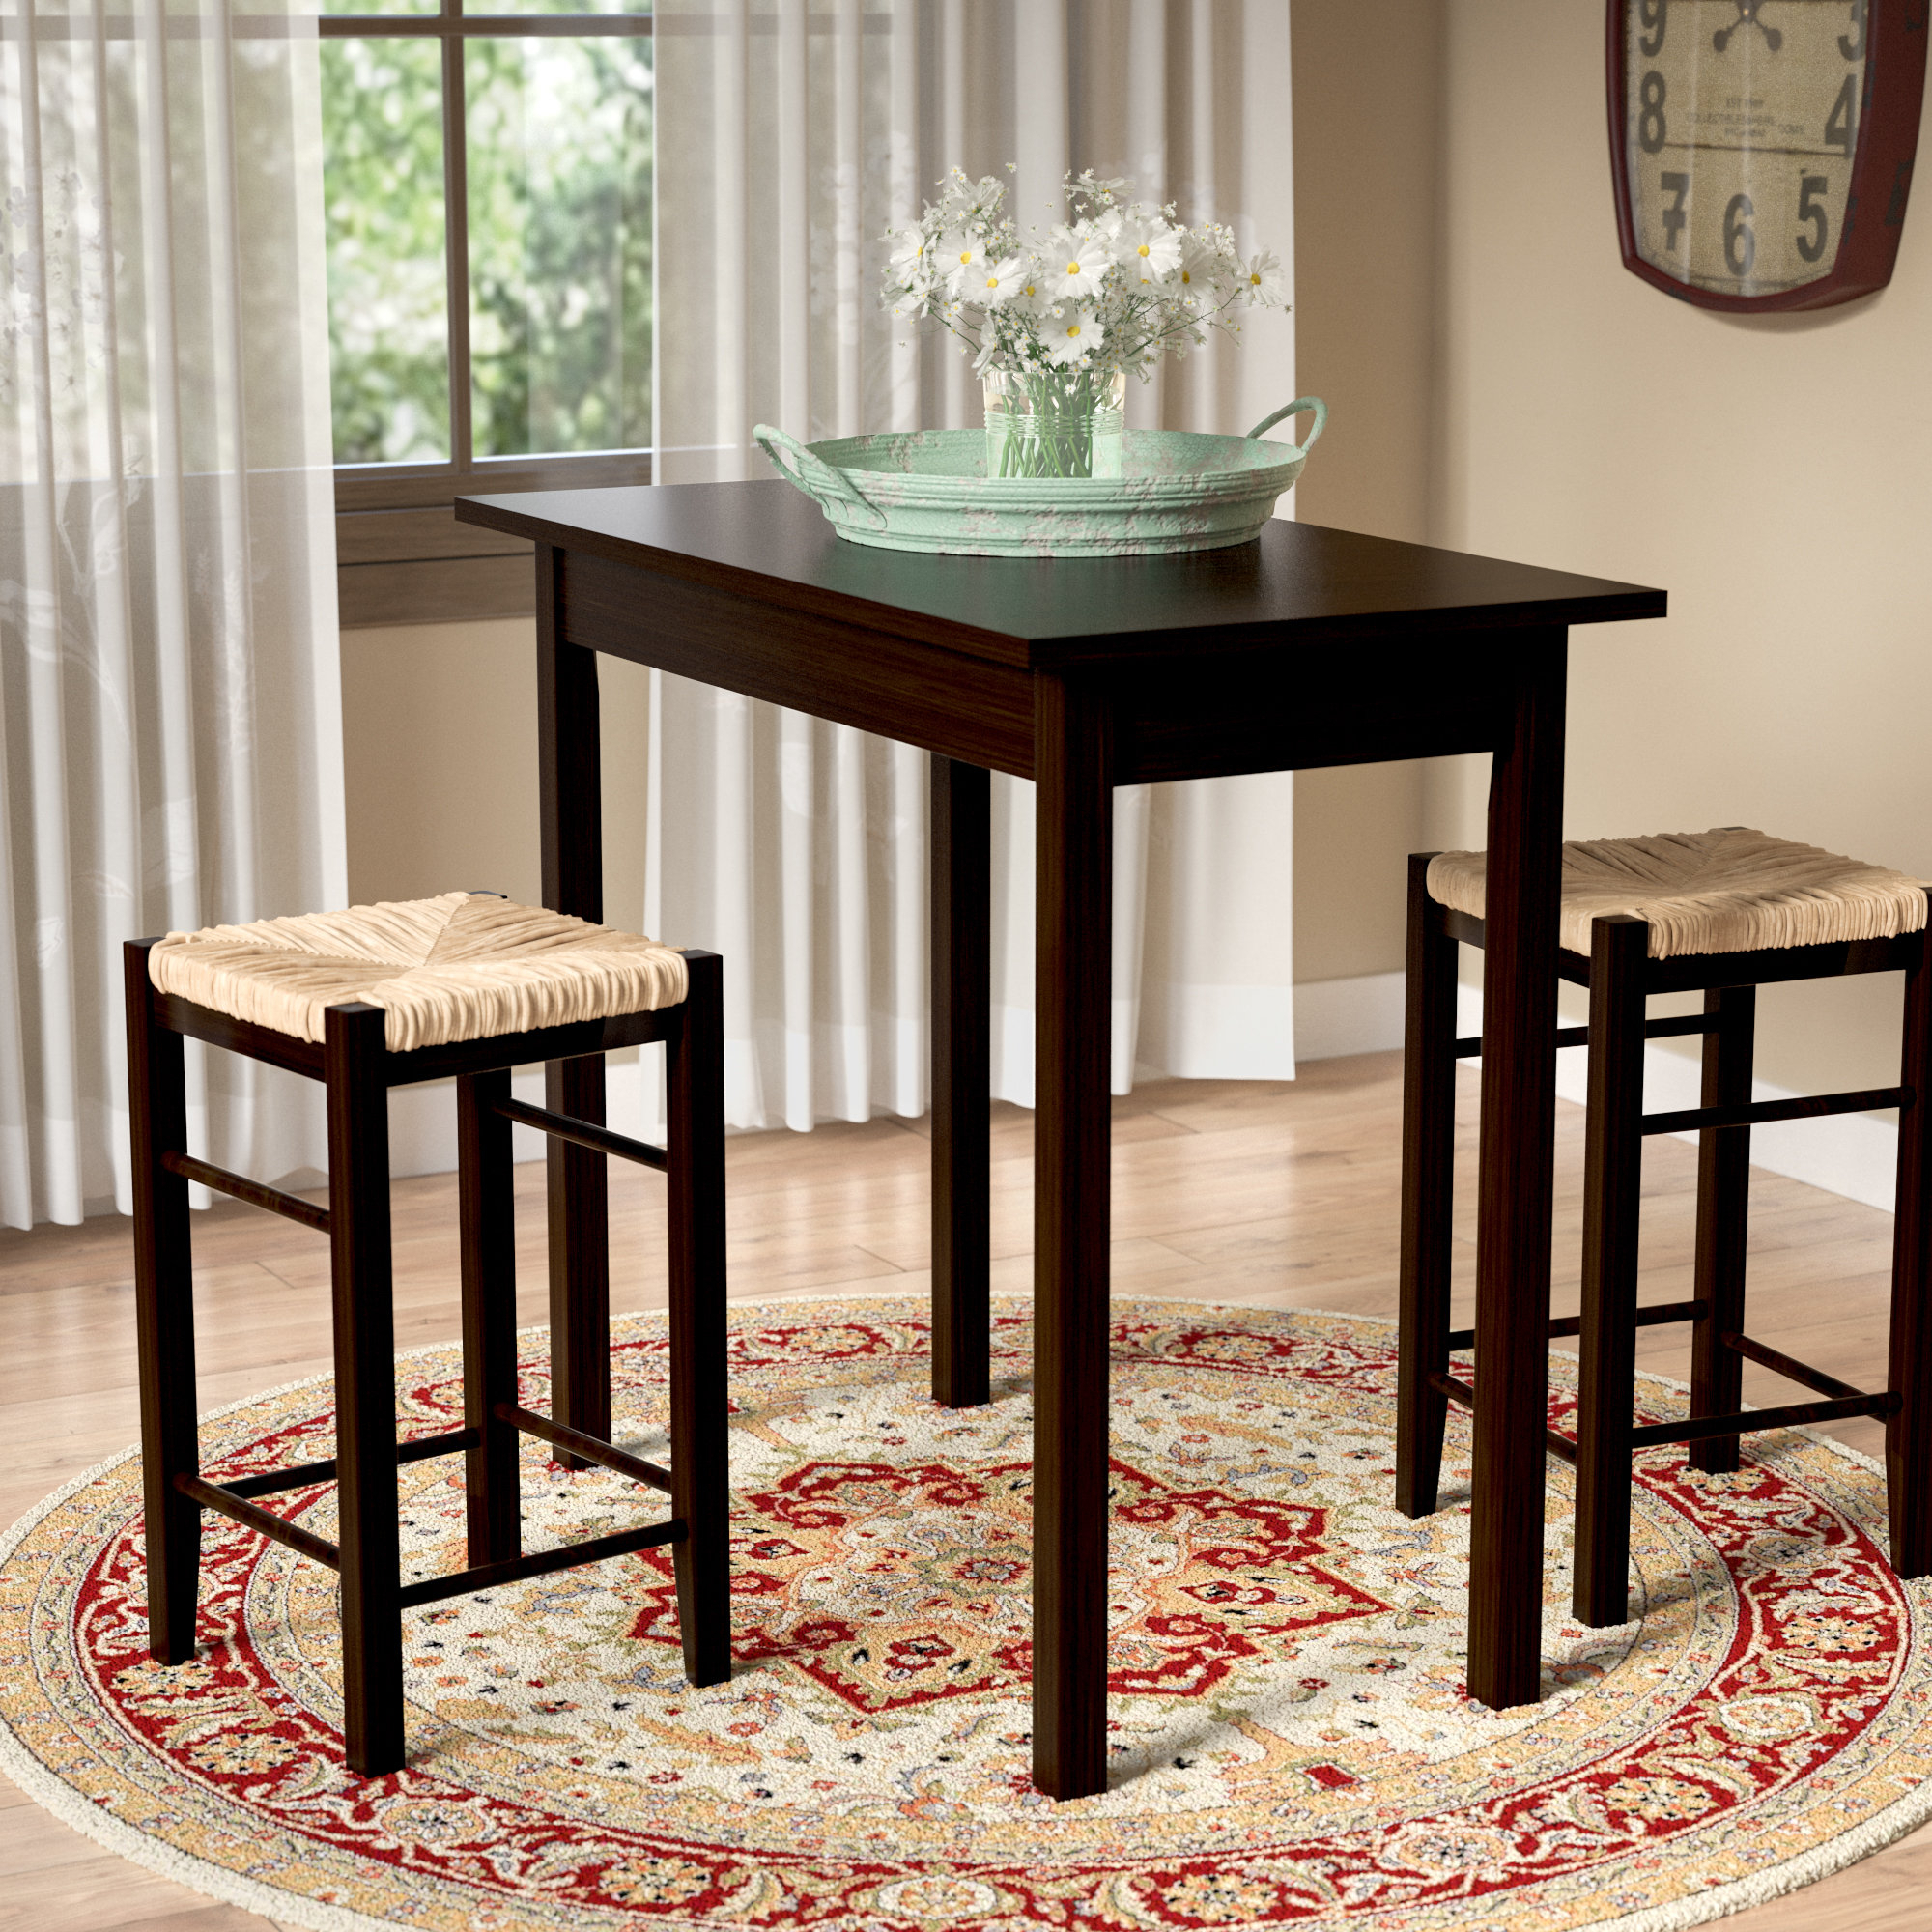 Widely Used August Grove Tenney 3 Piece Counter Height Dining Set & Reviews Intended For Nutter 3 Piece Dining Sets (#19 of 20)